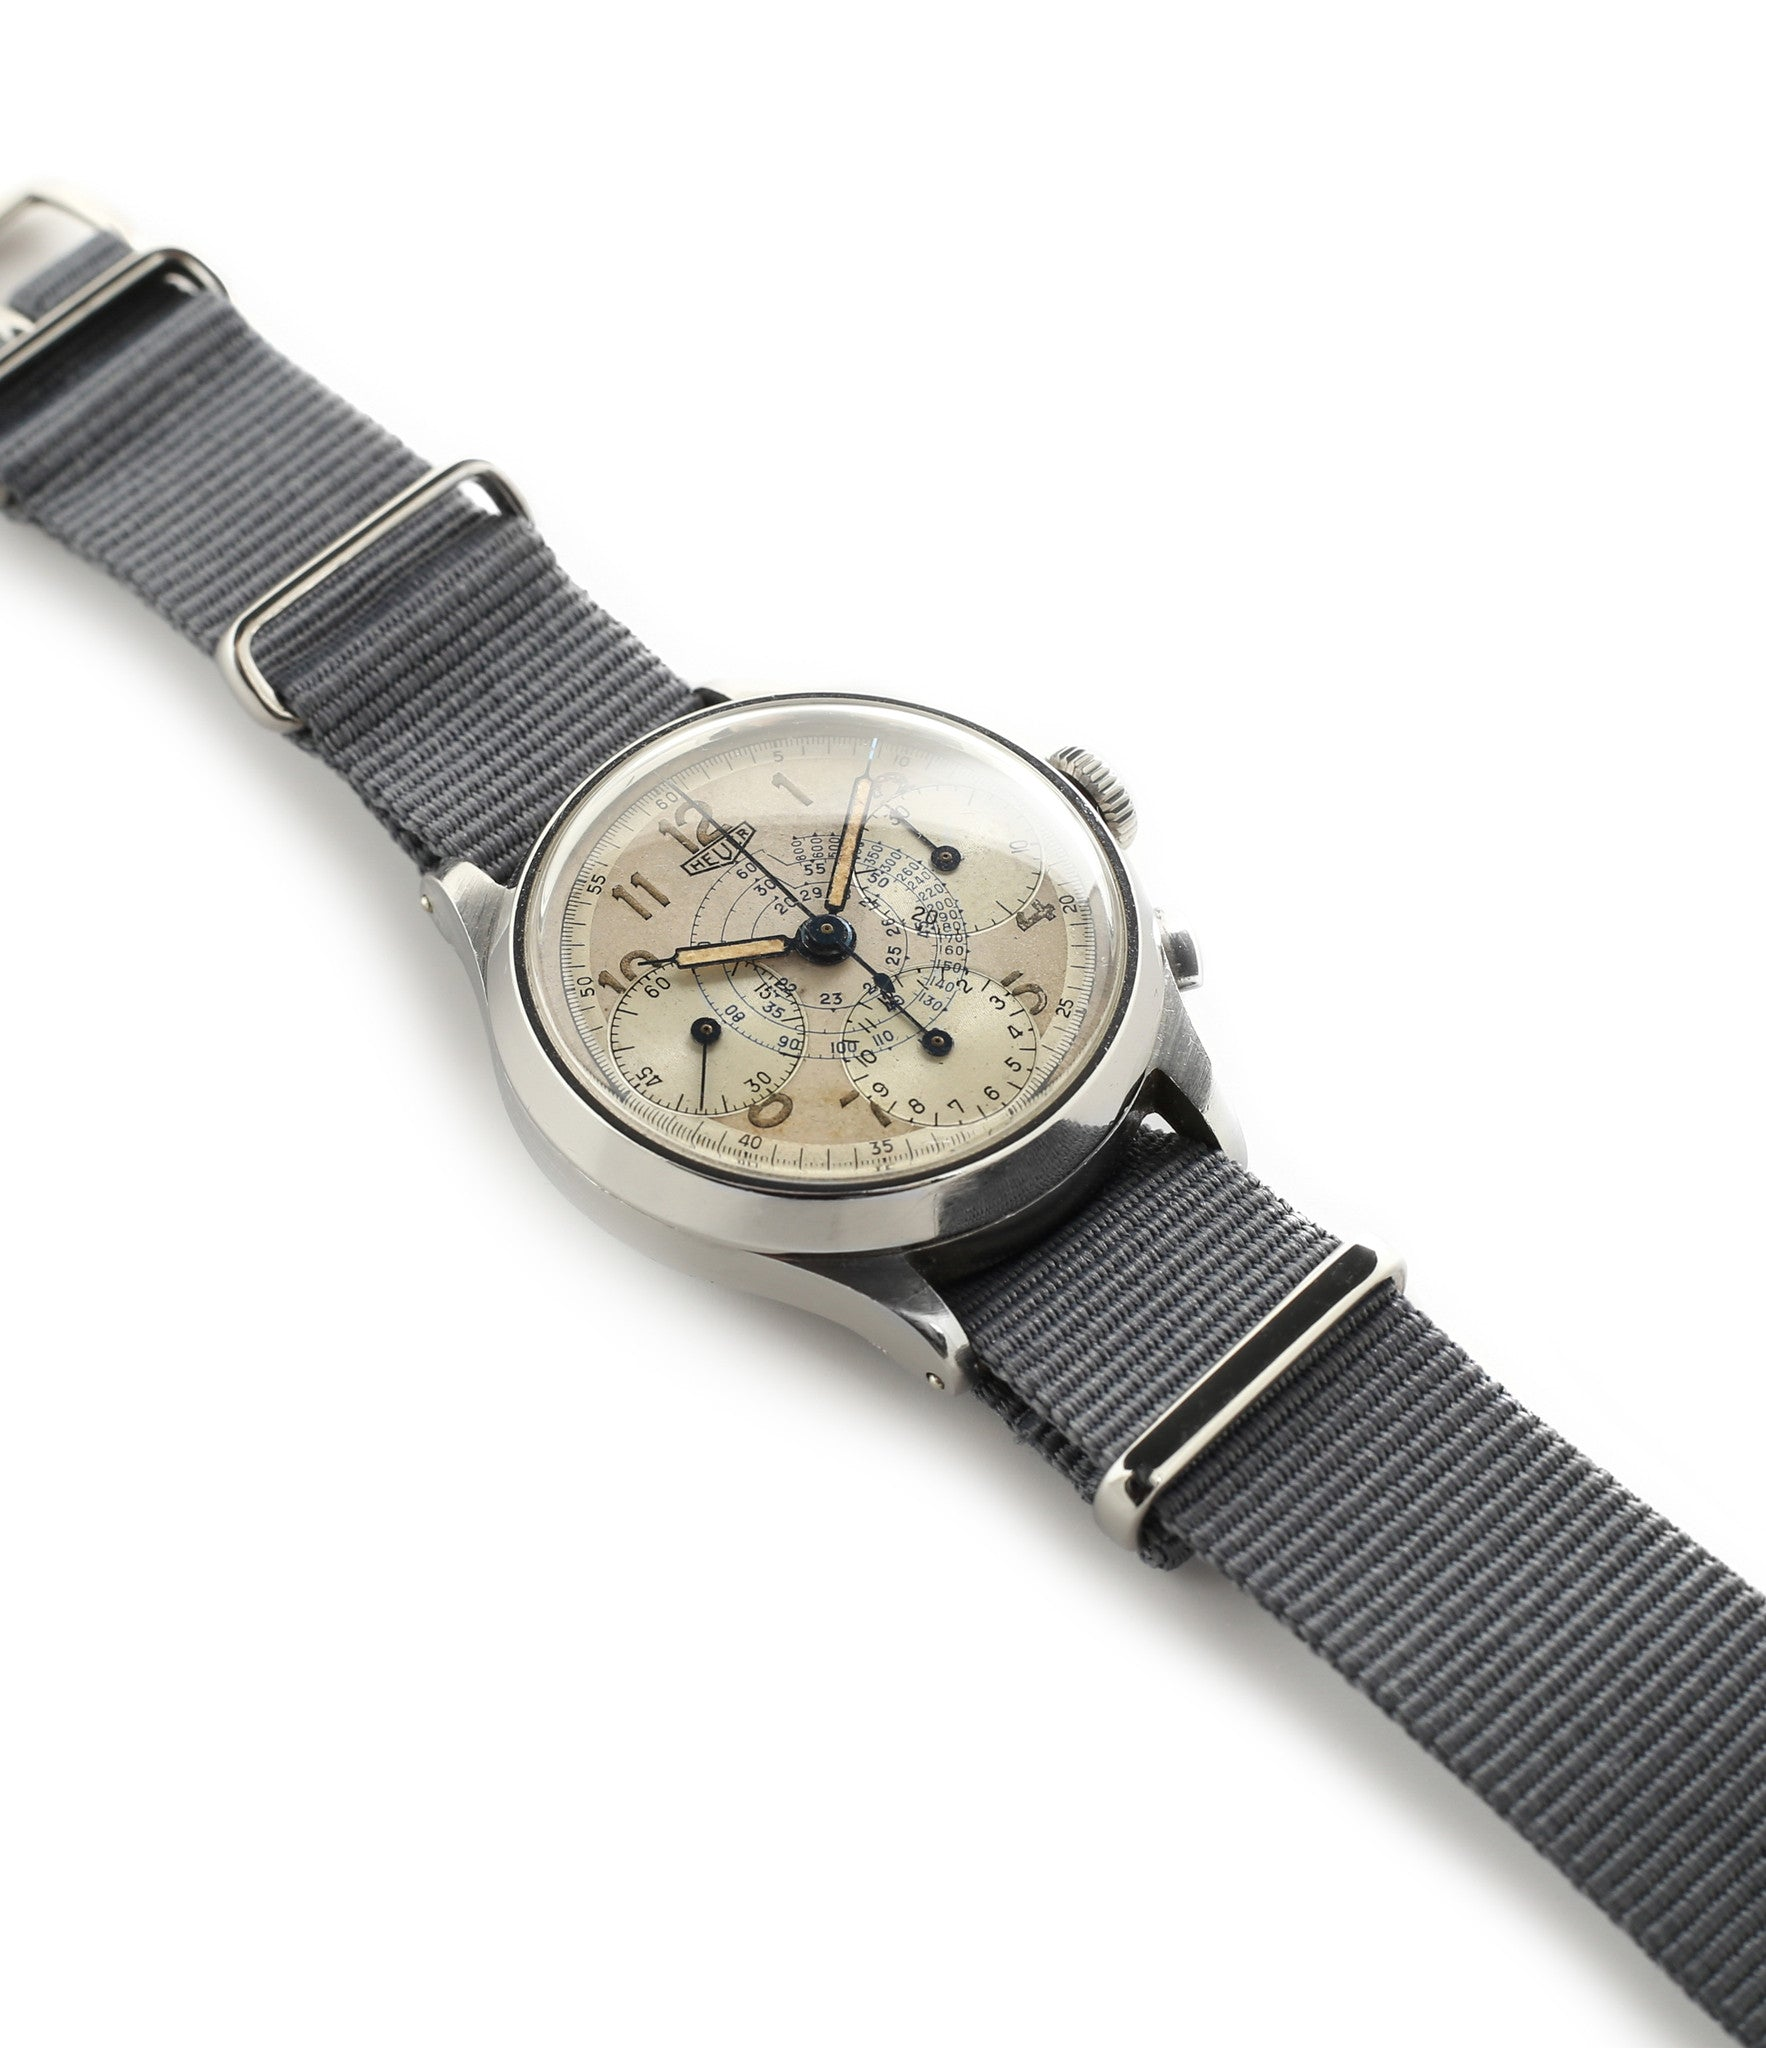 for sale vintage Heuer Chronograph steel watch online at A Collected Man London